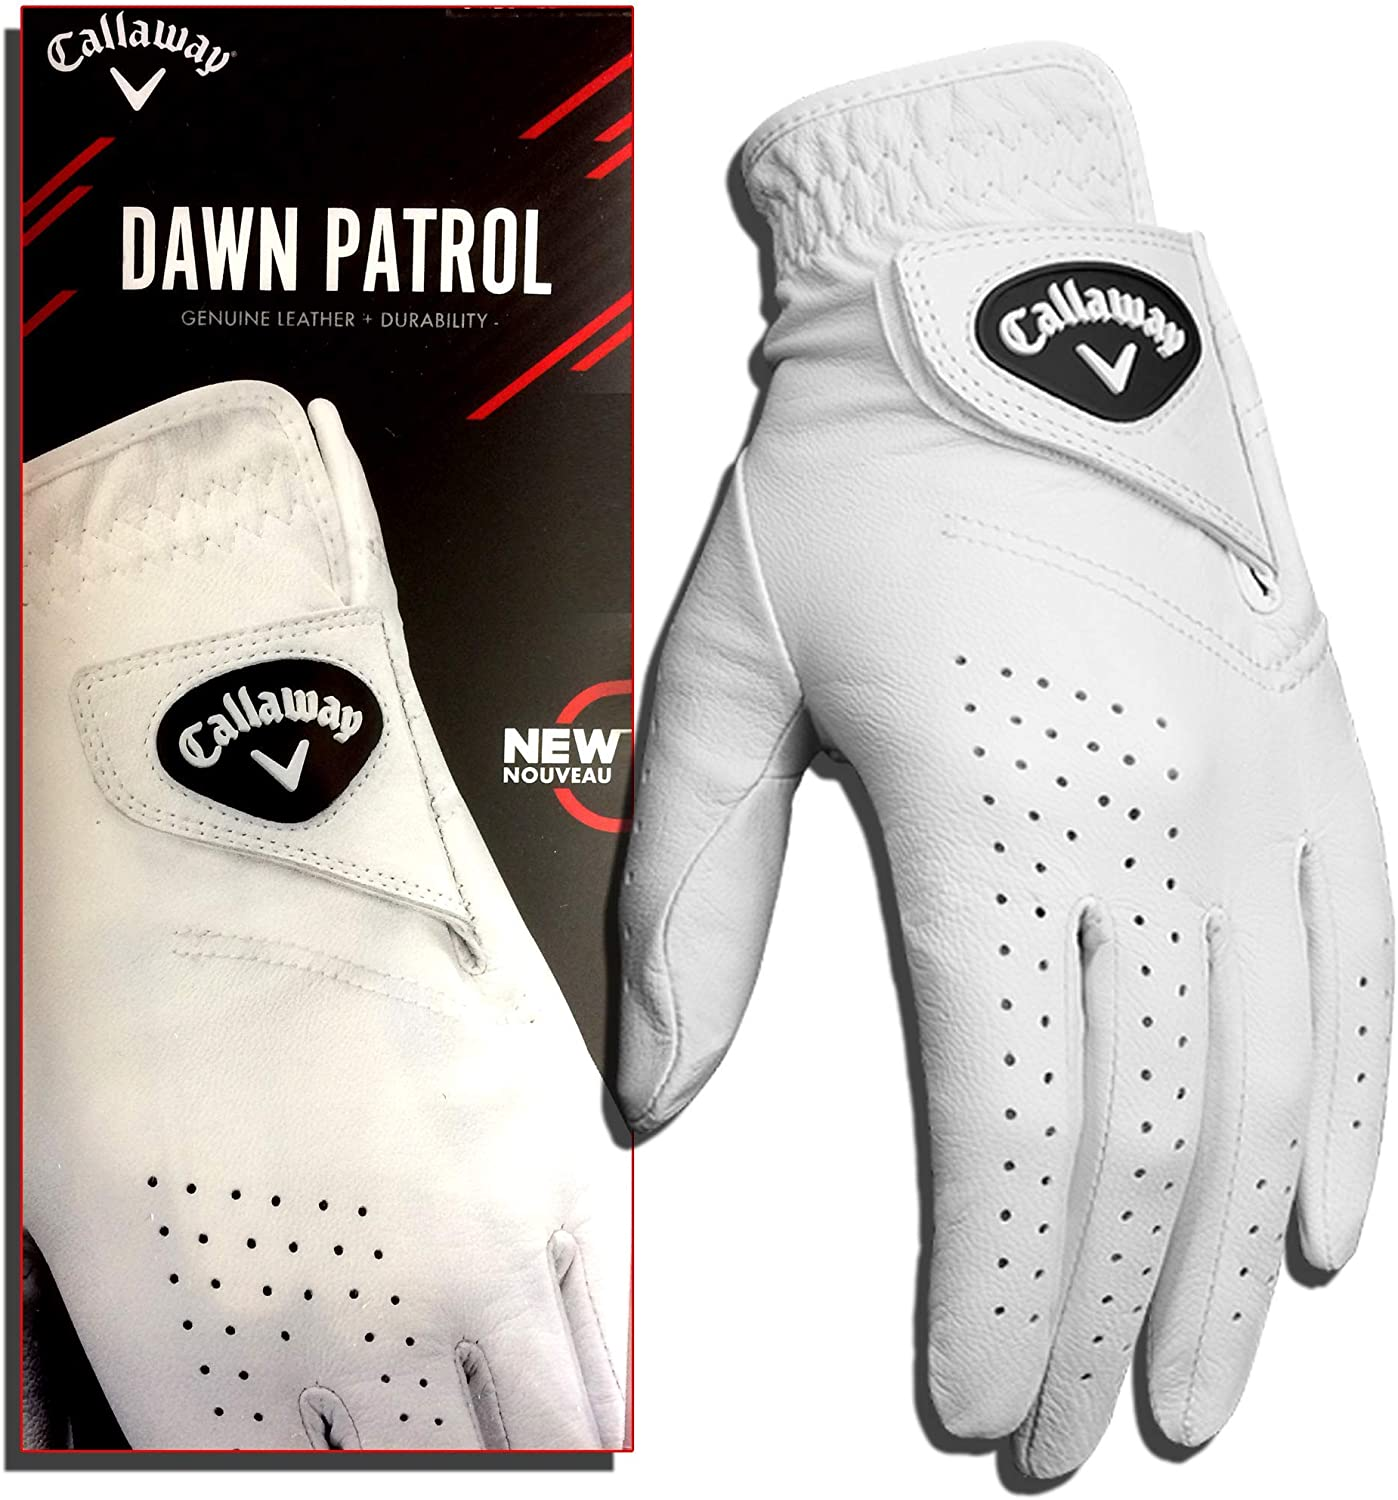 Callaway Golf Men's Dawn Patrol 100% Premium Leather Golf Glove